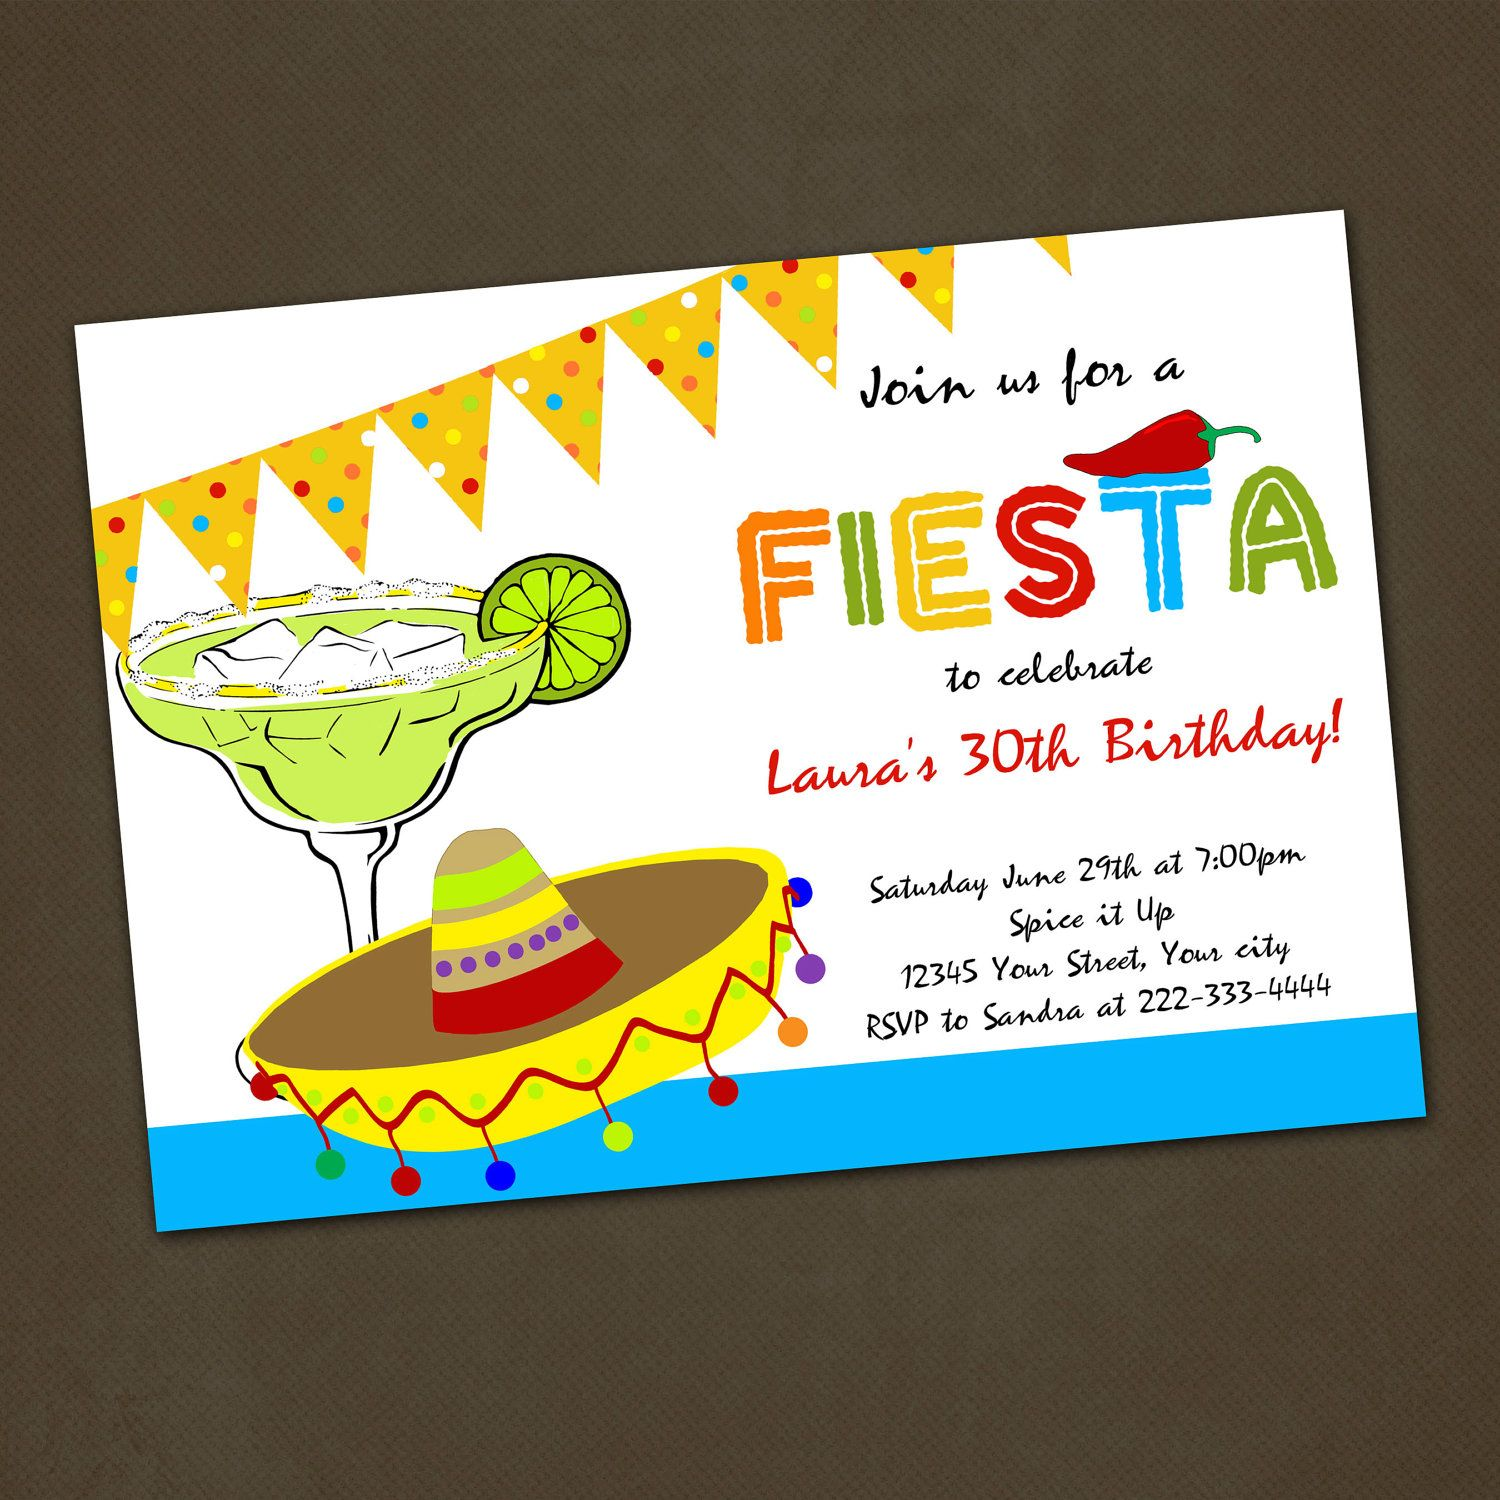 fiesta birthday card ; c9c5ee21ecd7cd8da9334646681bf8d6